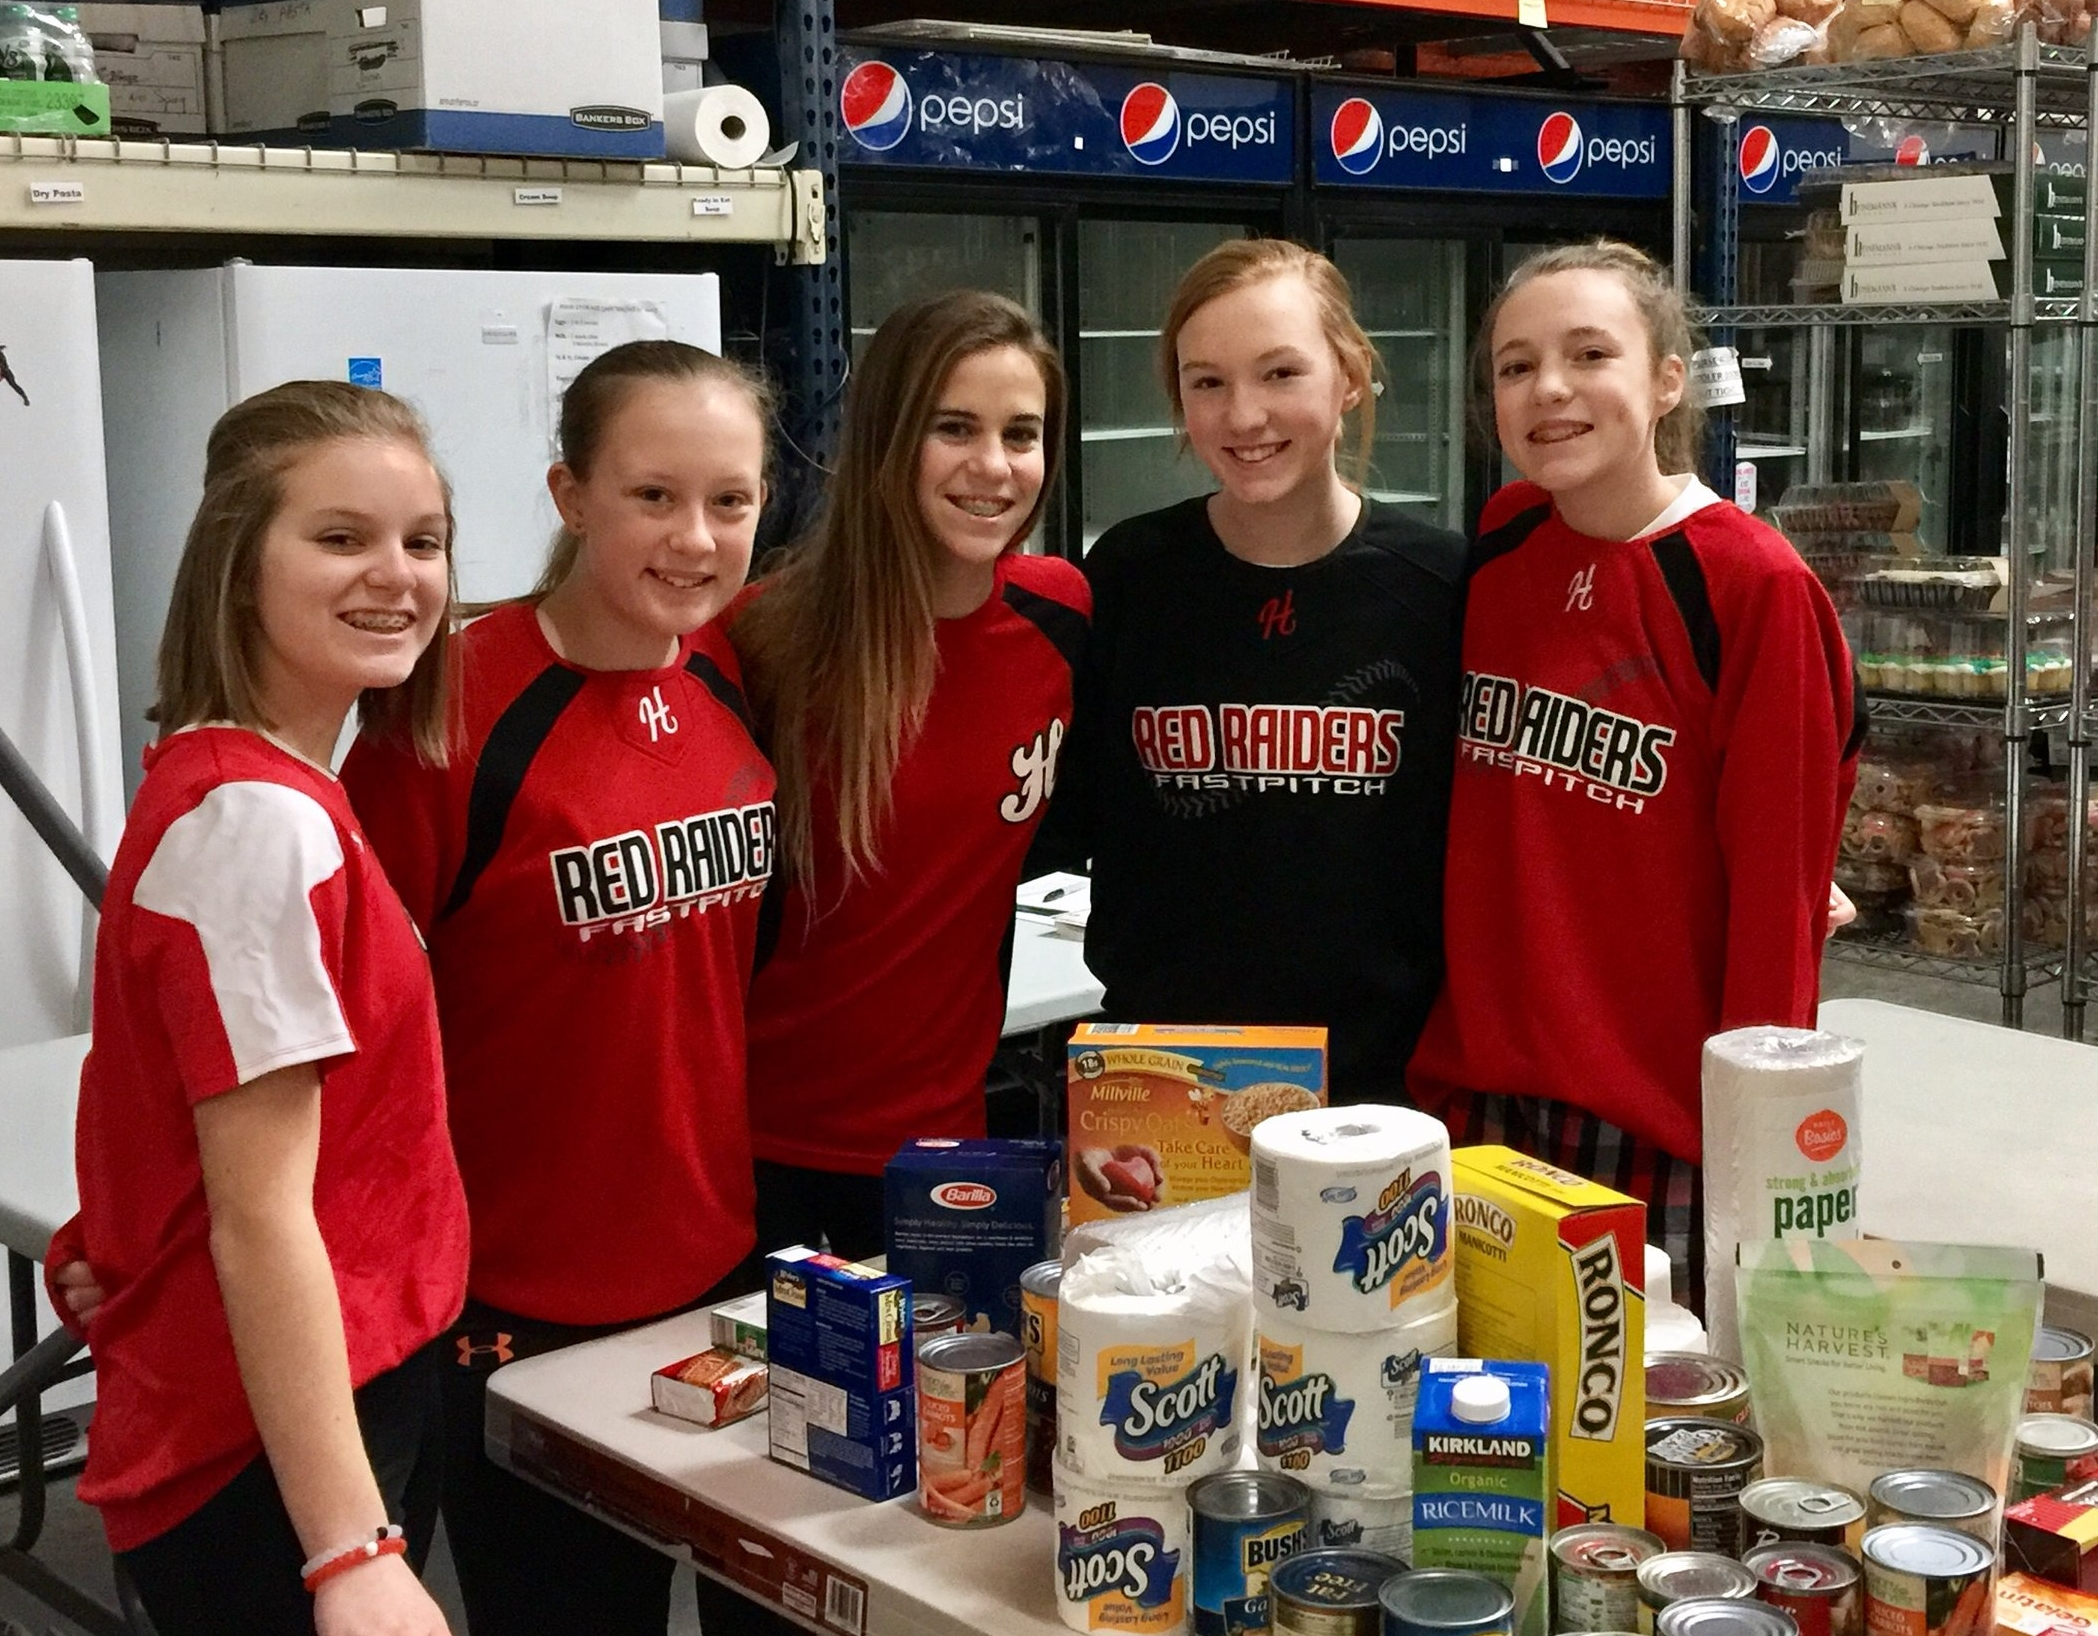 Raider On Hunger was a successful food drive & fundraiser that helped to stock Grafton Food Pantry with items to support local families in need.